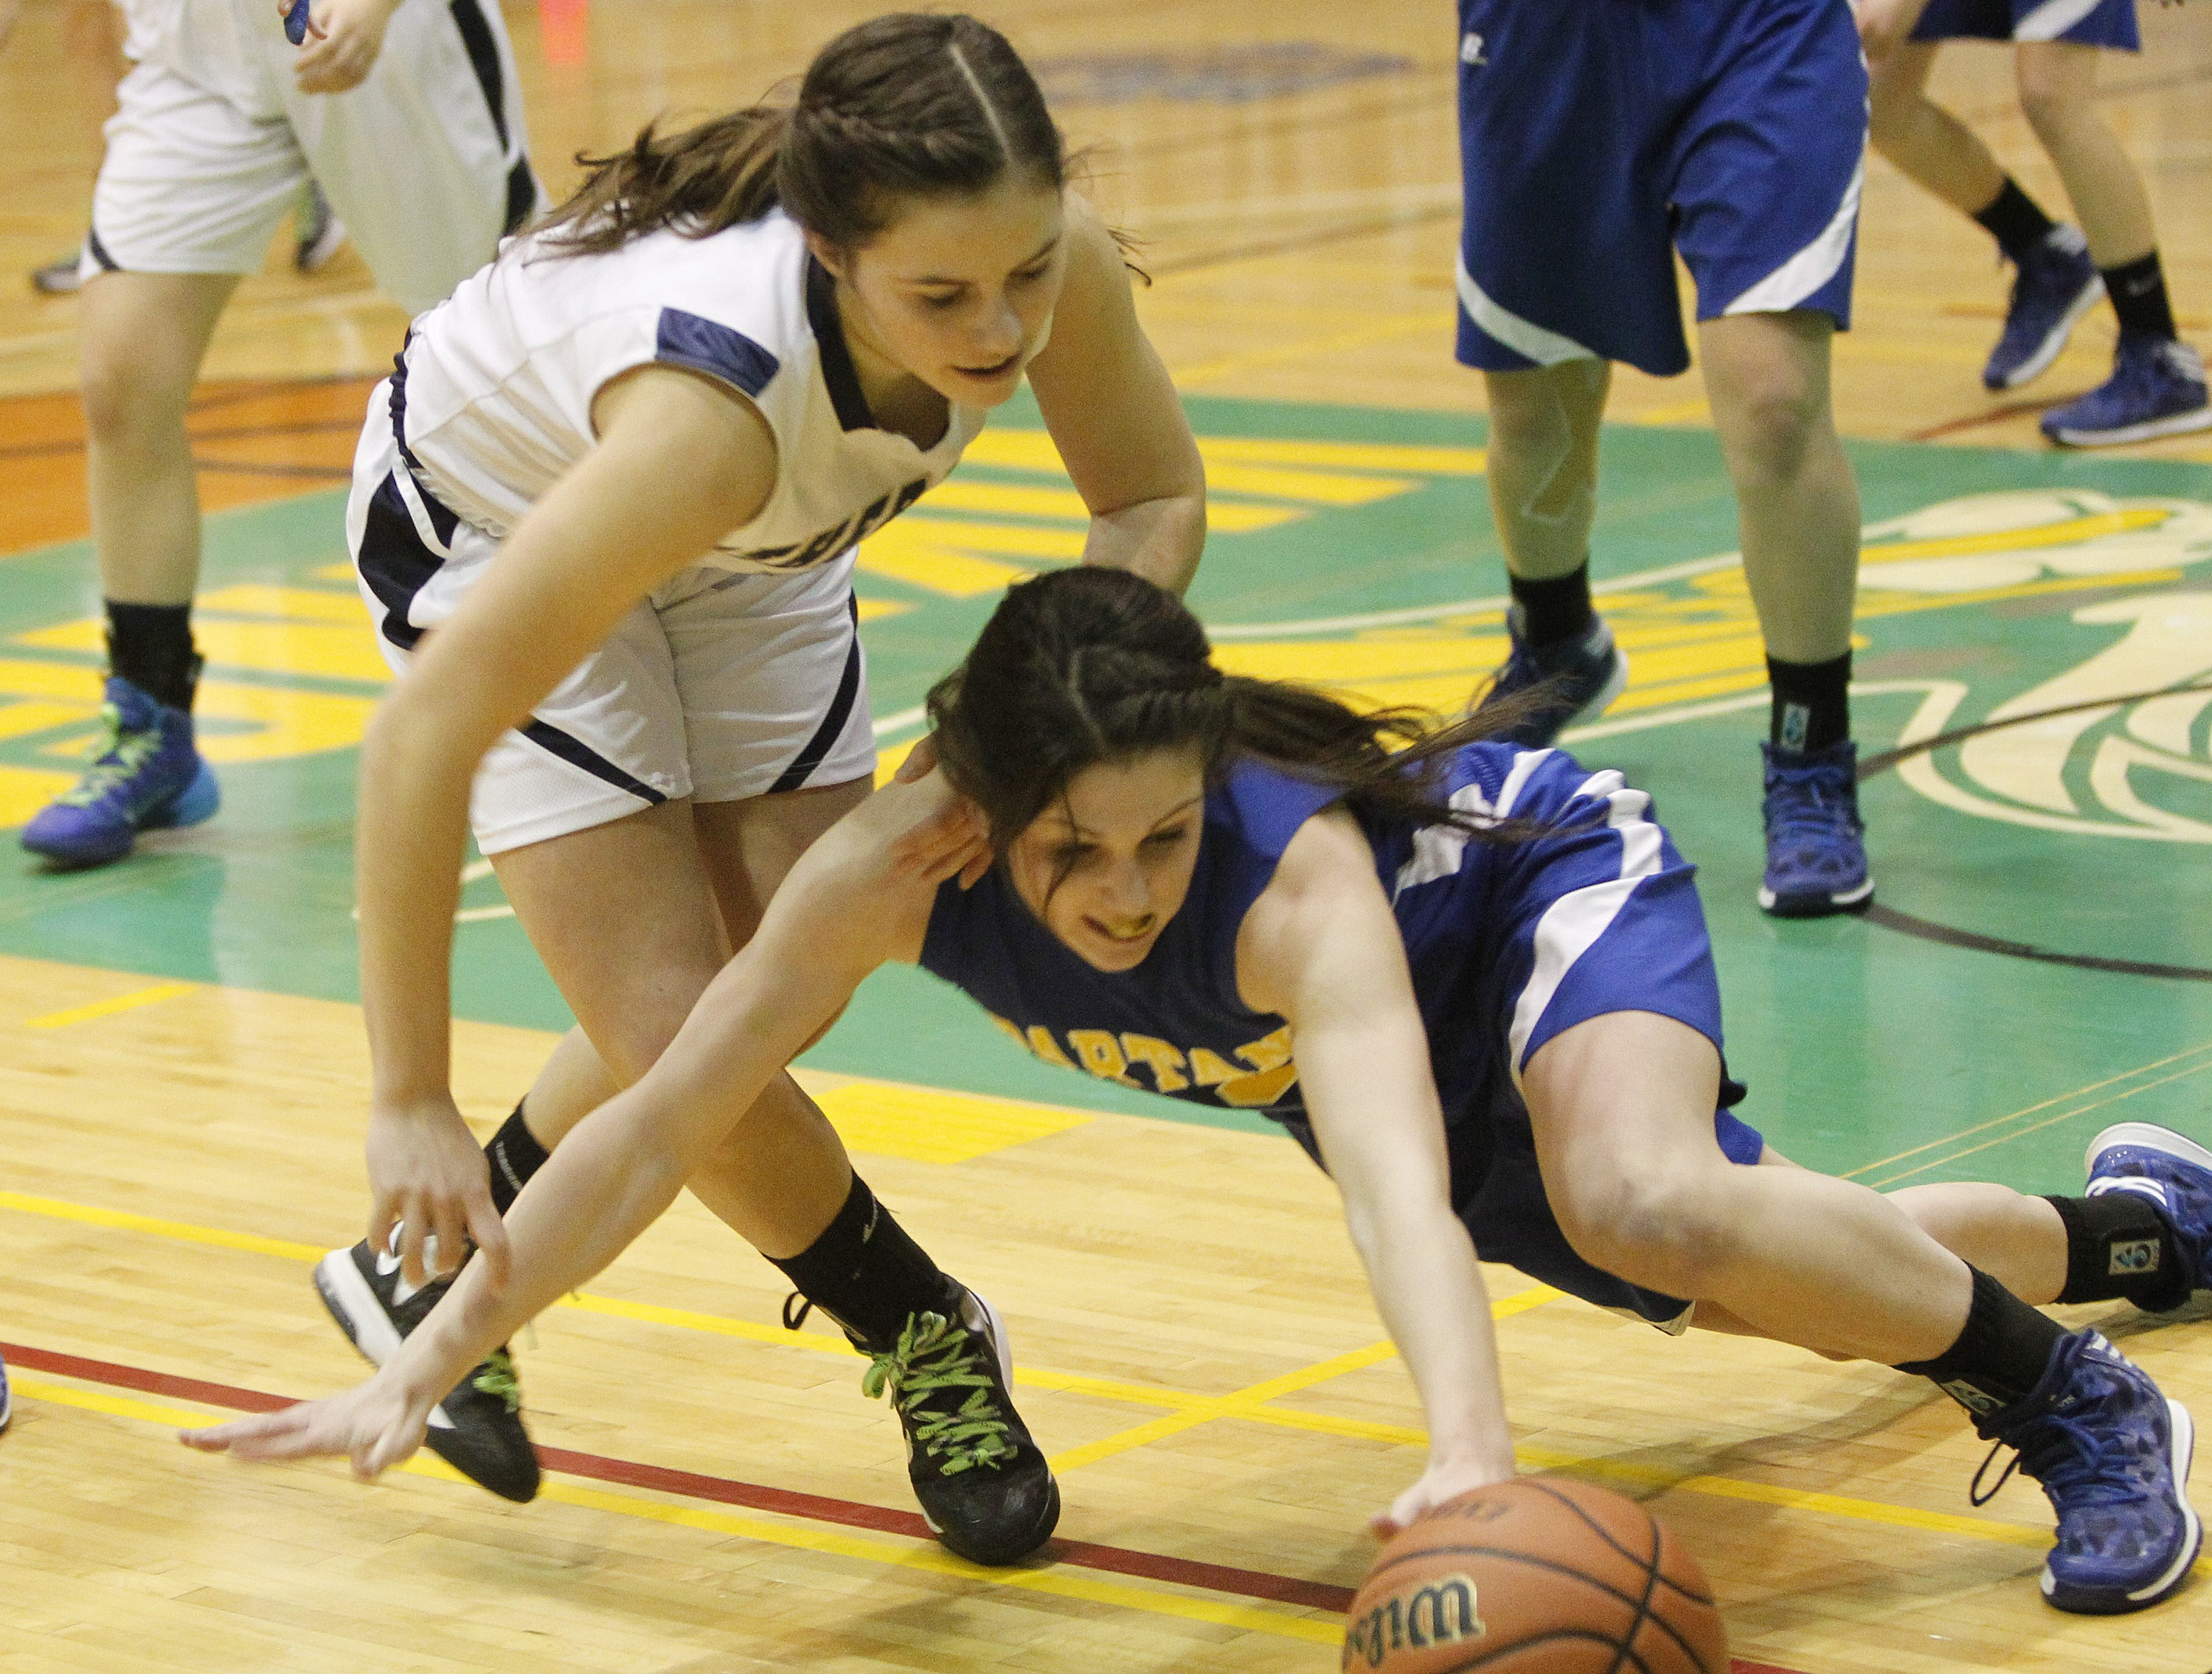 2014: Pittsford Sutherland's Allie Panara, left, and Maine-Endwell's Victoria Dean go after a loose ball. Dean finished with four points.